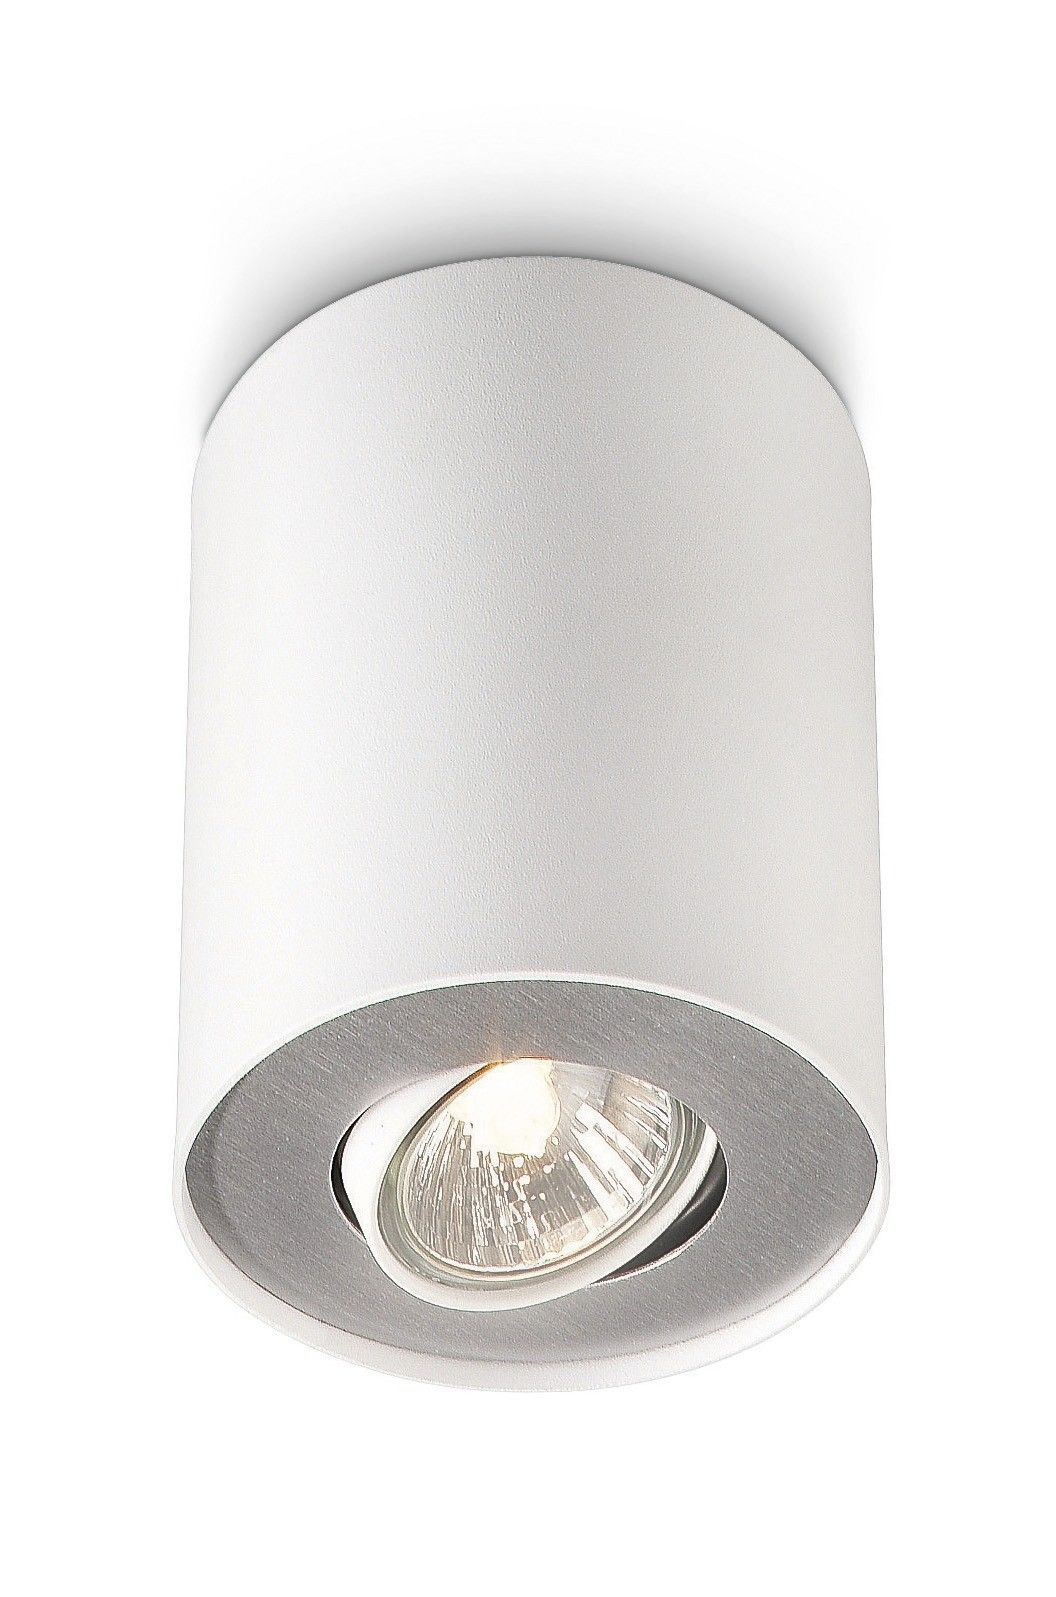 5633031pn Philips Myliving Pillar Plafondlamp Wit Met